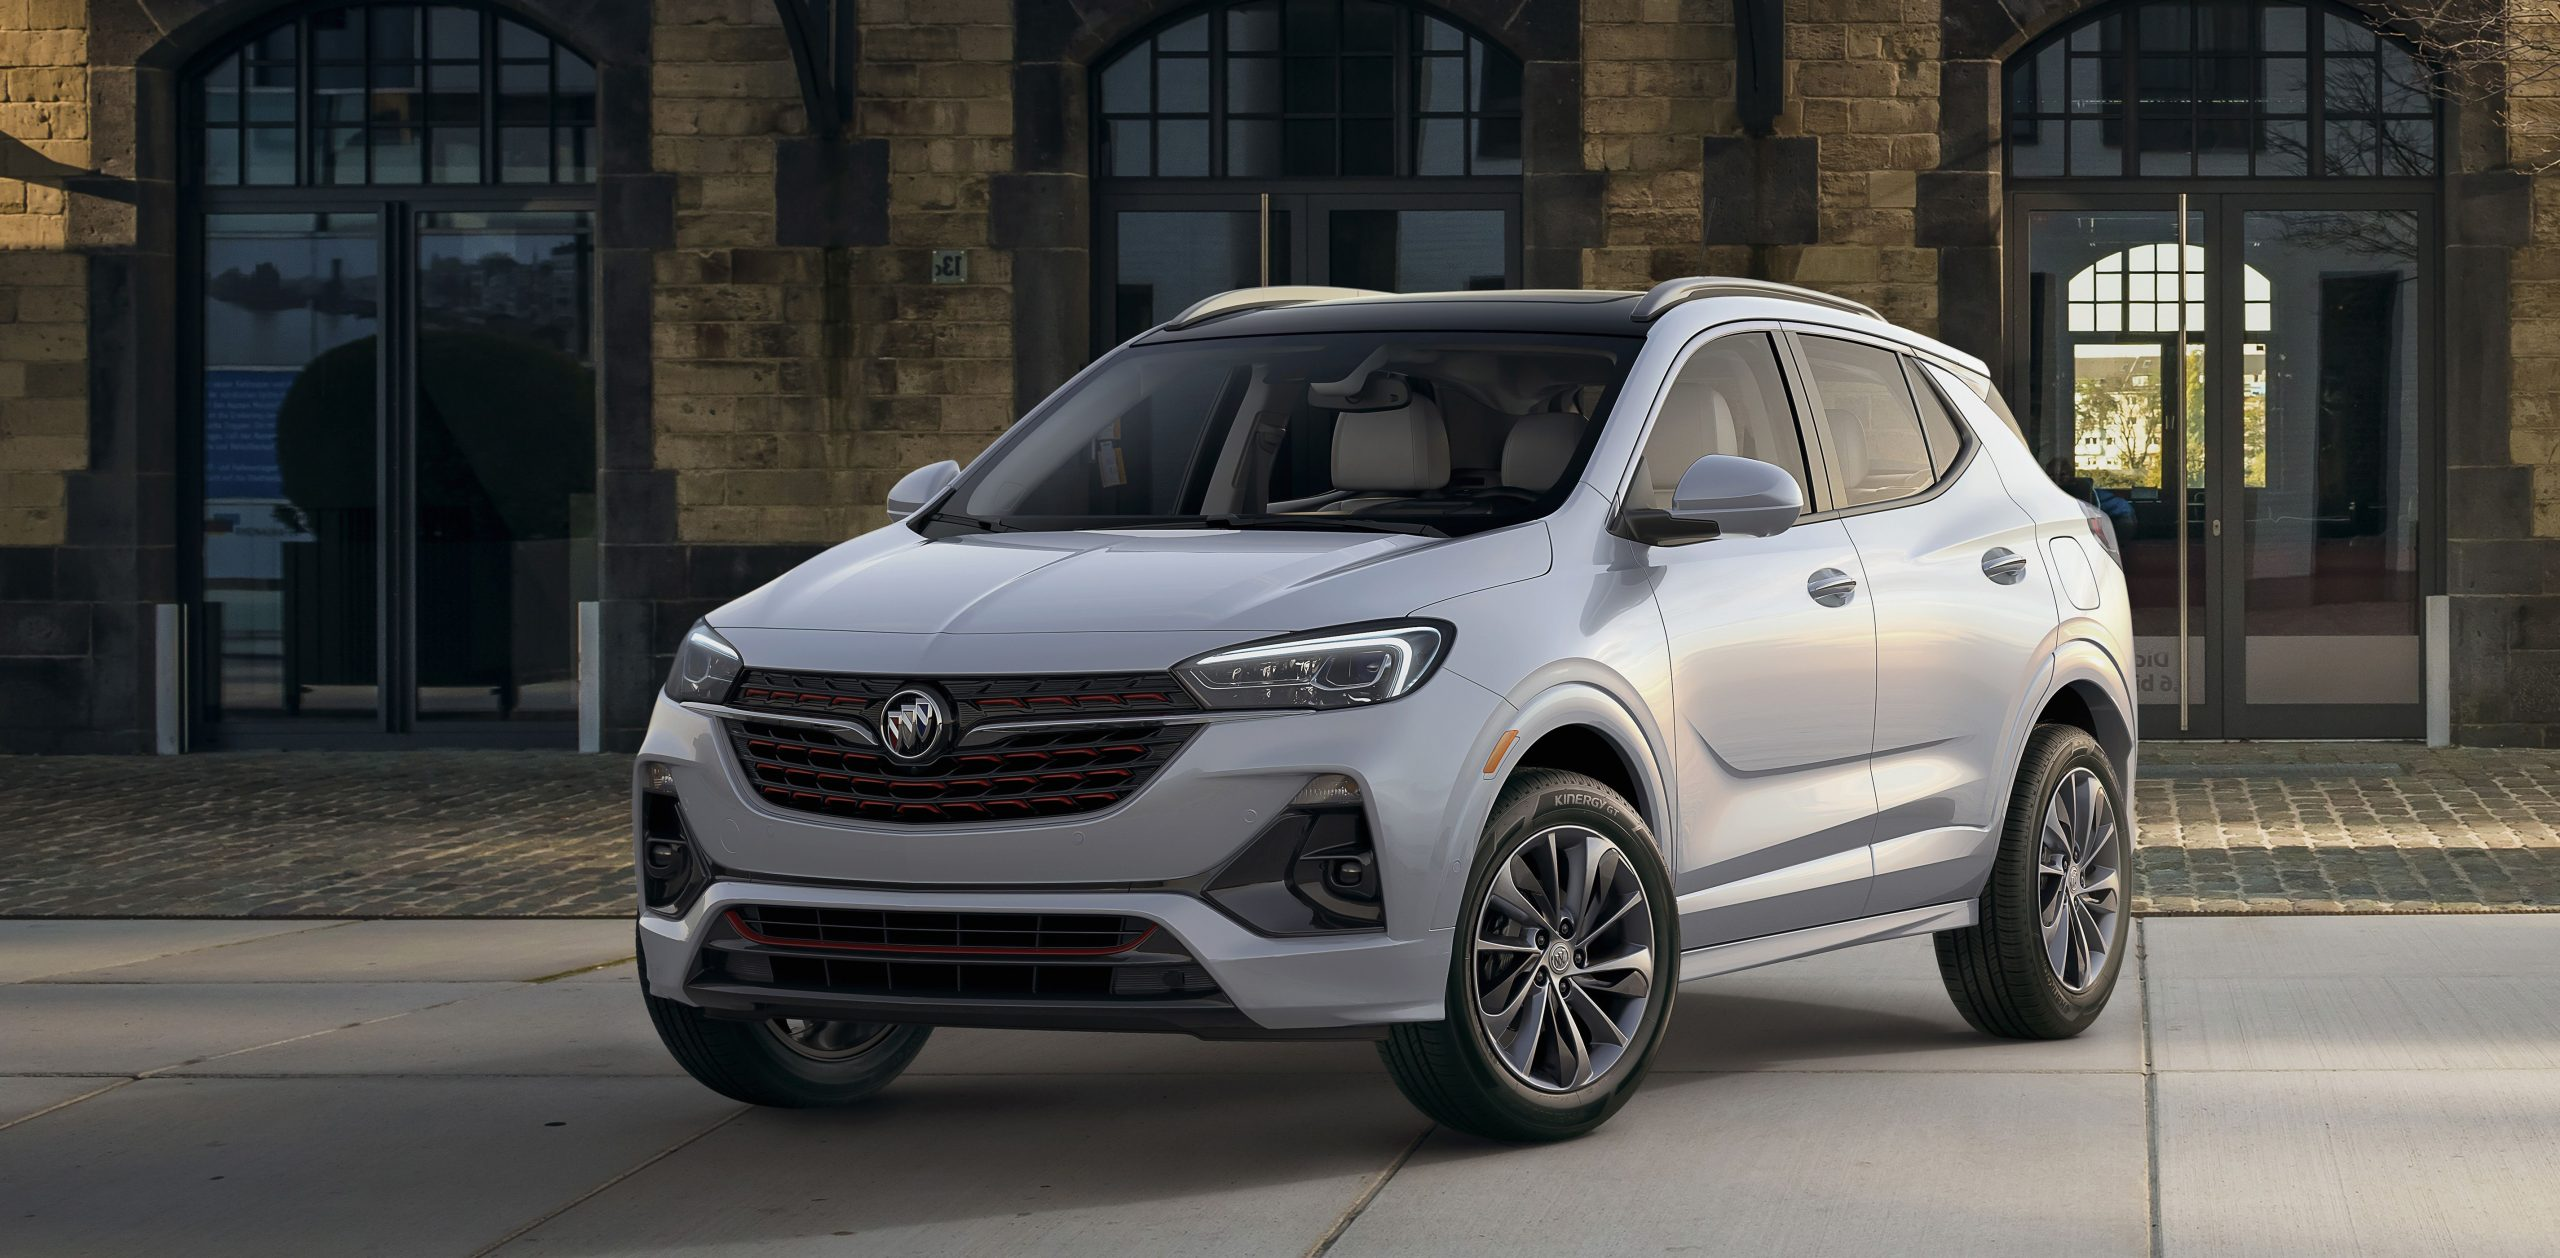 2020 Buick Encore Gx: What We Know So Far New 2021 Buick Encore Seat Covers, Safety Features, Towing Capacity